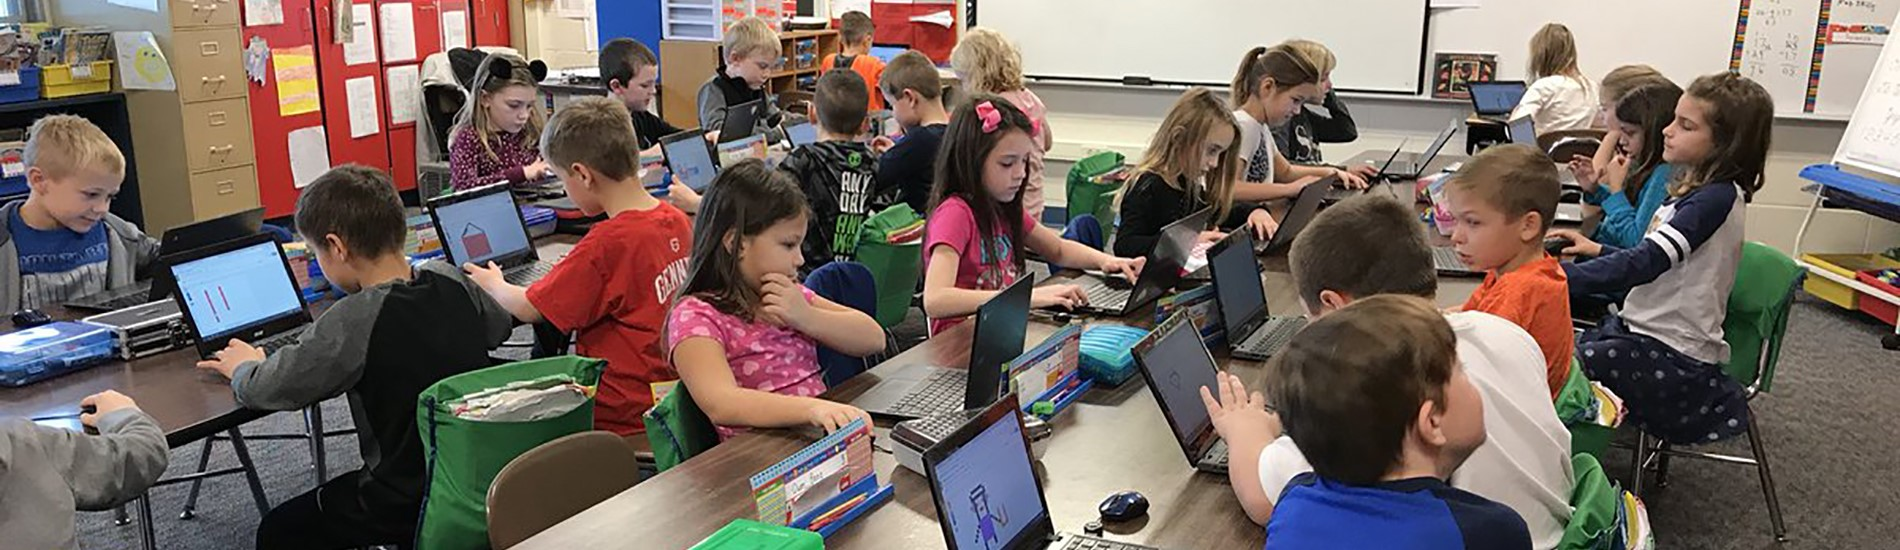 Students using Chromebooks to create.